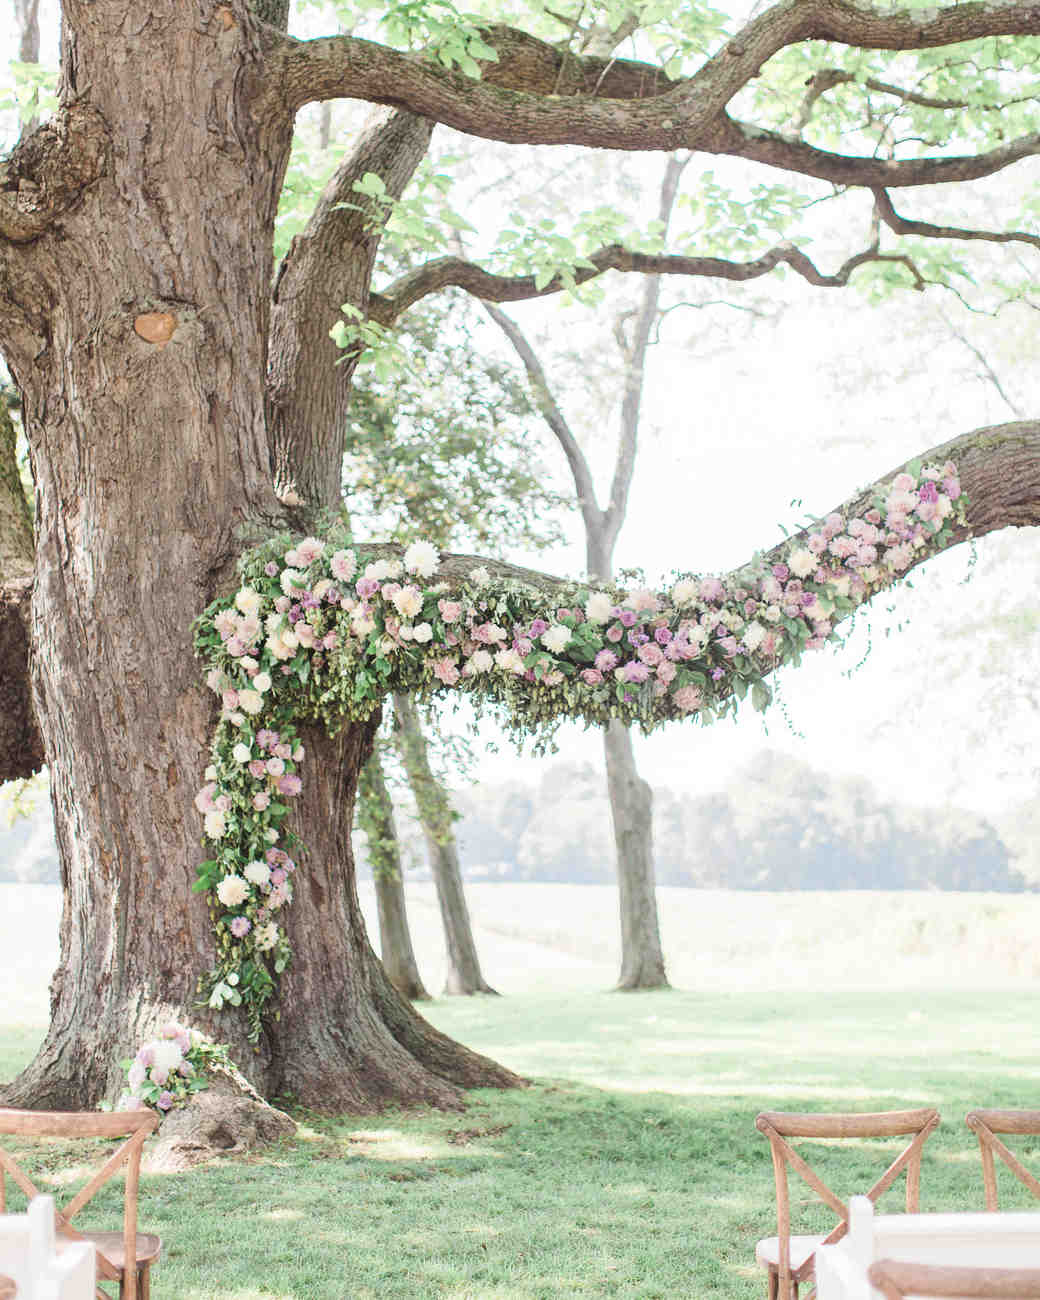 sarah-michael-wedding-ceremony-tree-446-s112783-0416_vert